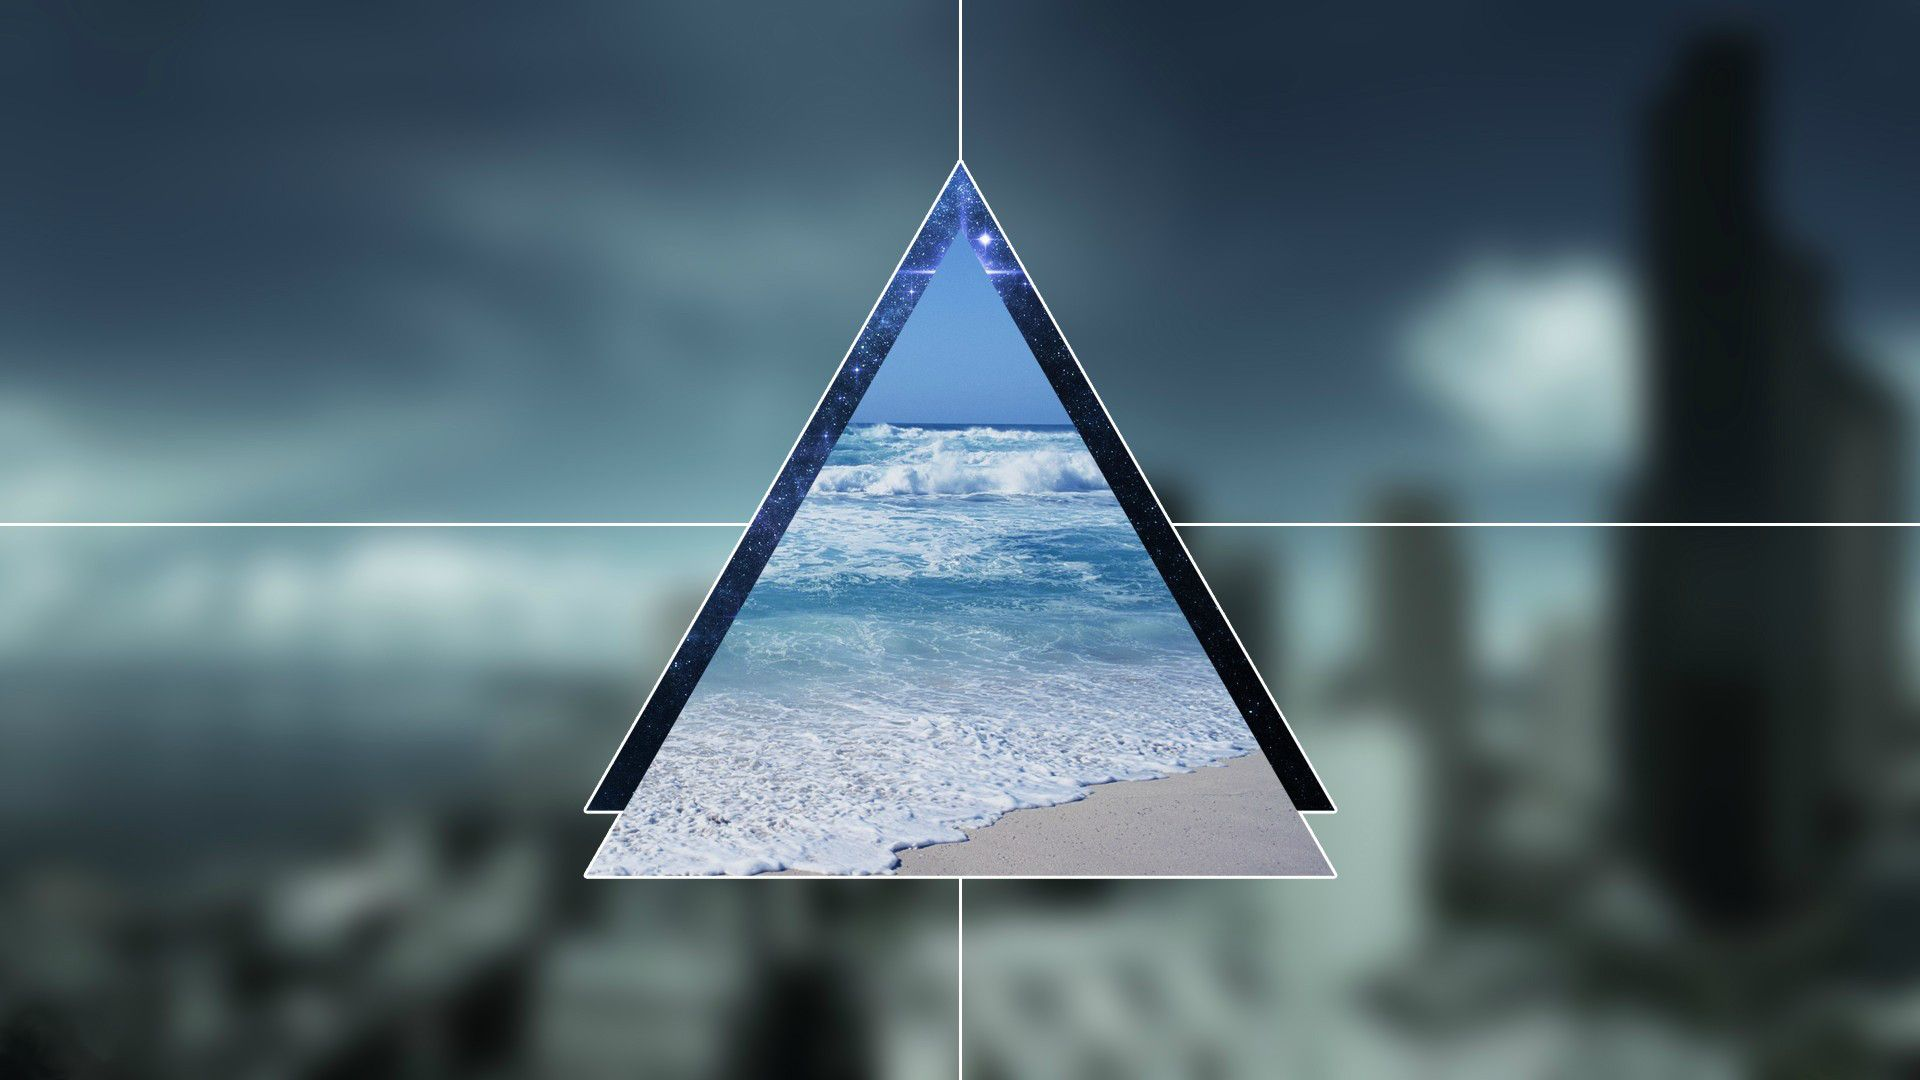 Triangle a wallpaper